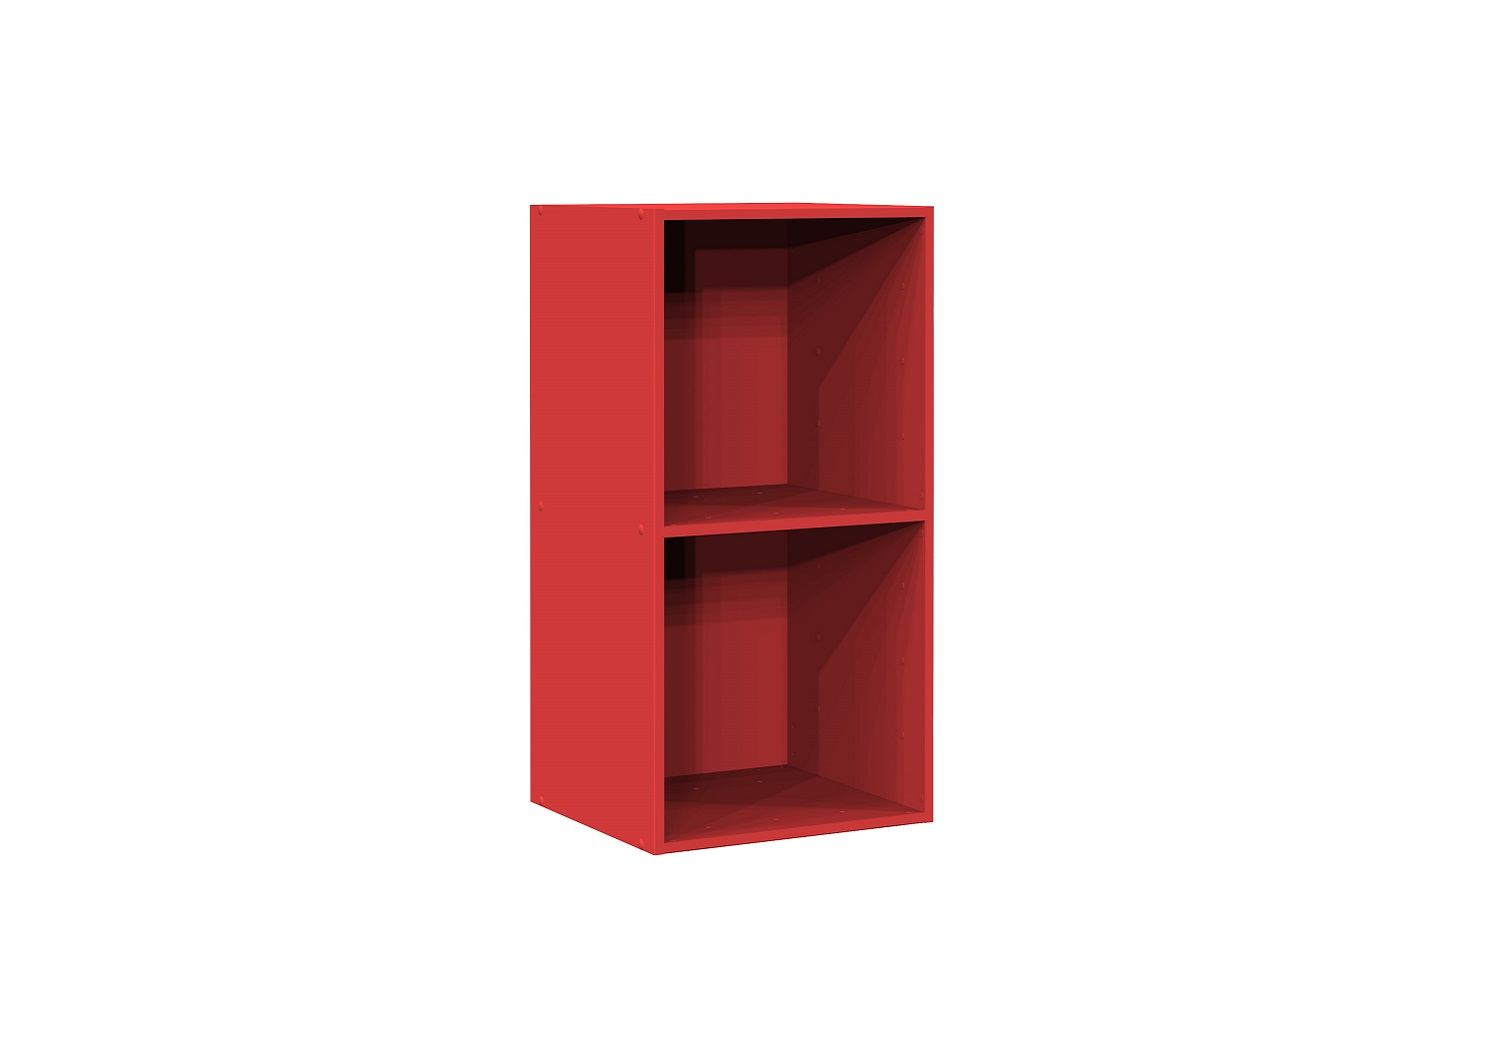 Bilrich Storage Furniture - Multi Kaz 2x1 Cube Red